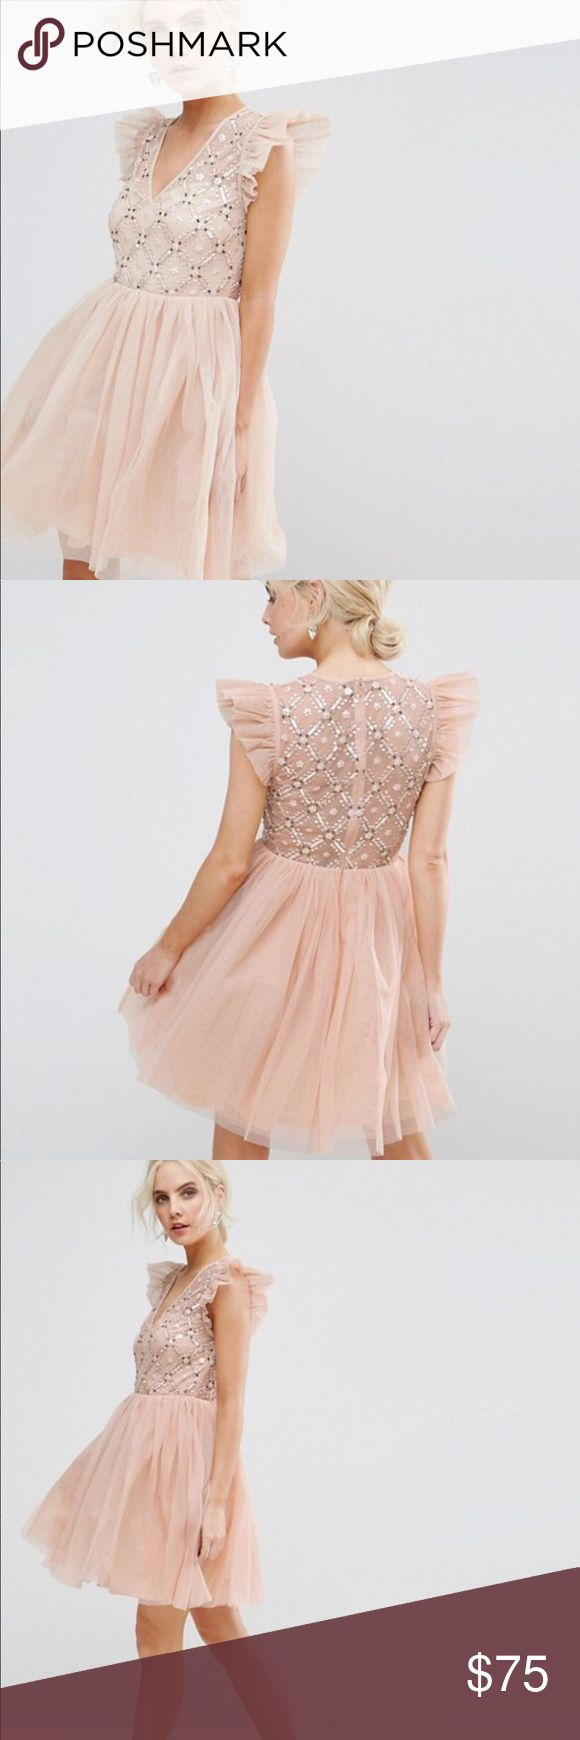 ASOS petite blush/nude dress Super beautiful and fun dress! Perfect for a bridesmaid or party. Never worn! Fits me perfect but I've found another dress to wear to my event. Size 6. Provides good stretch. ASOS Petite Dresses Wedding